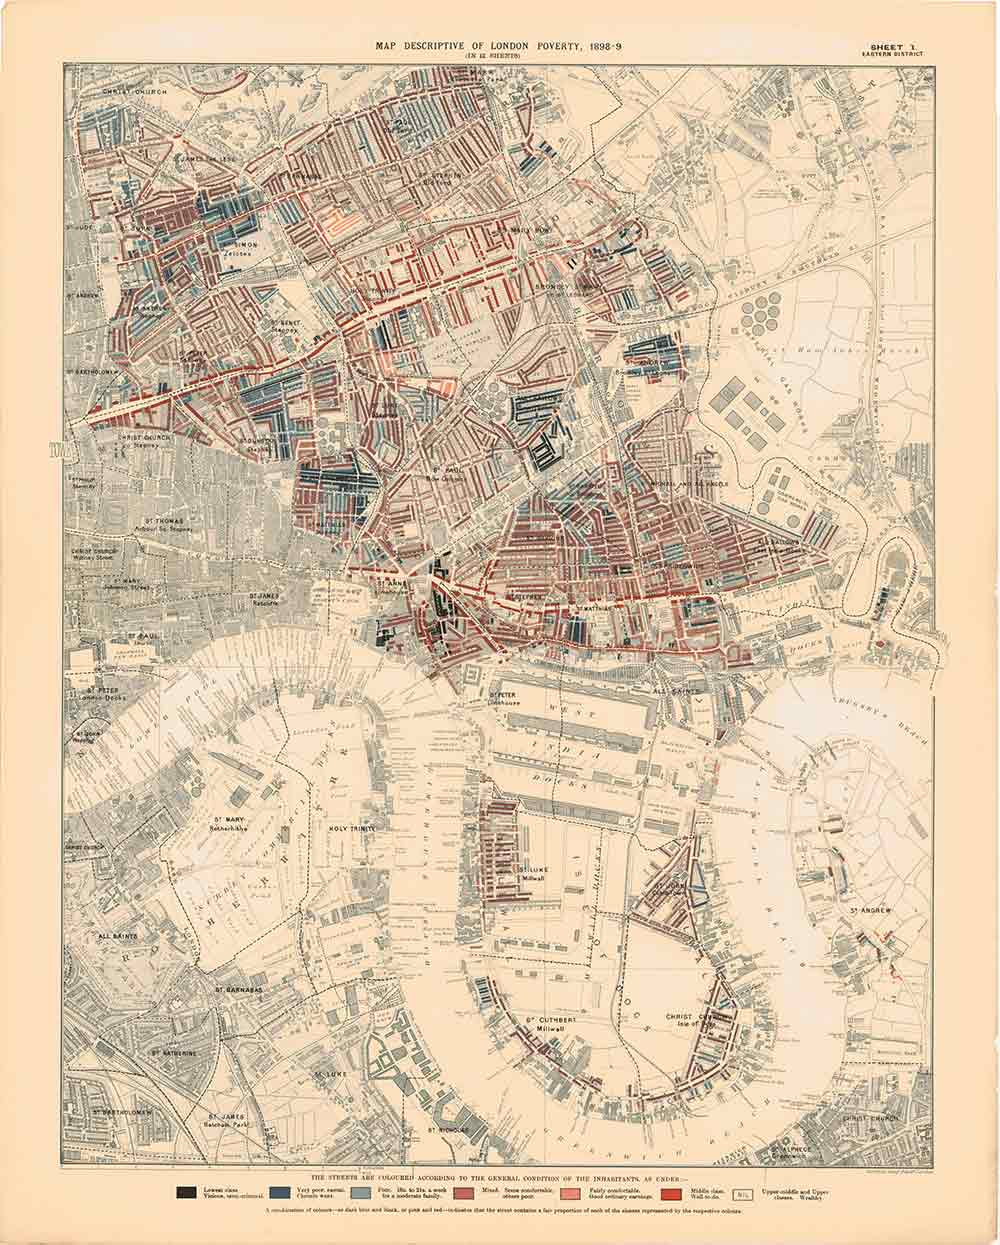 Eastern Area poverty map, 1898, Charles Booth.